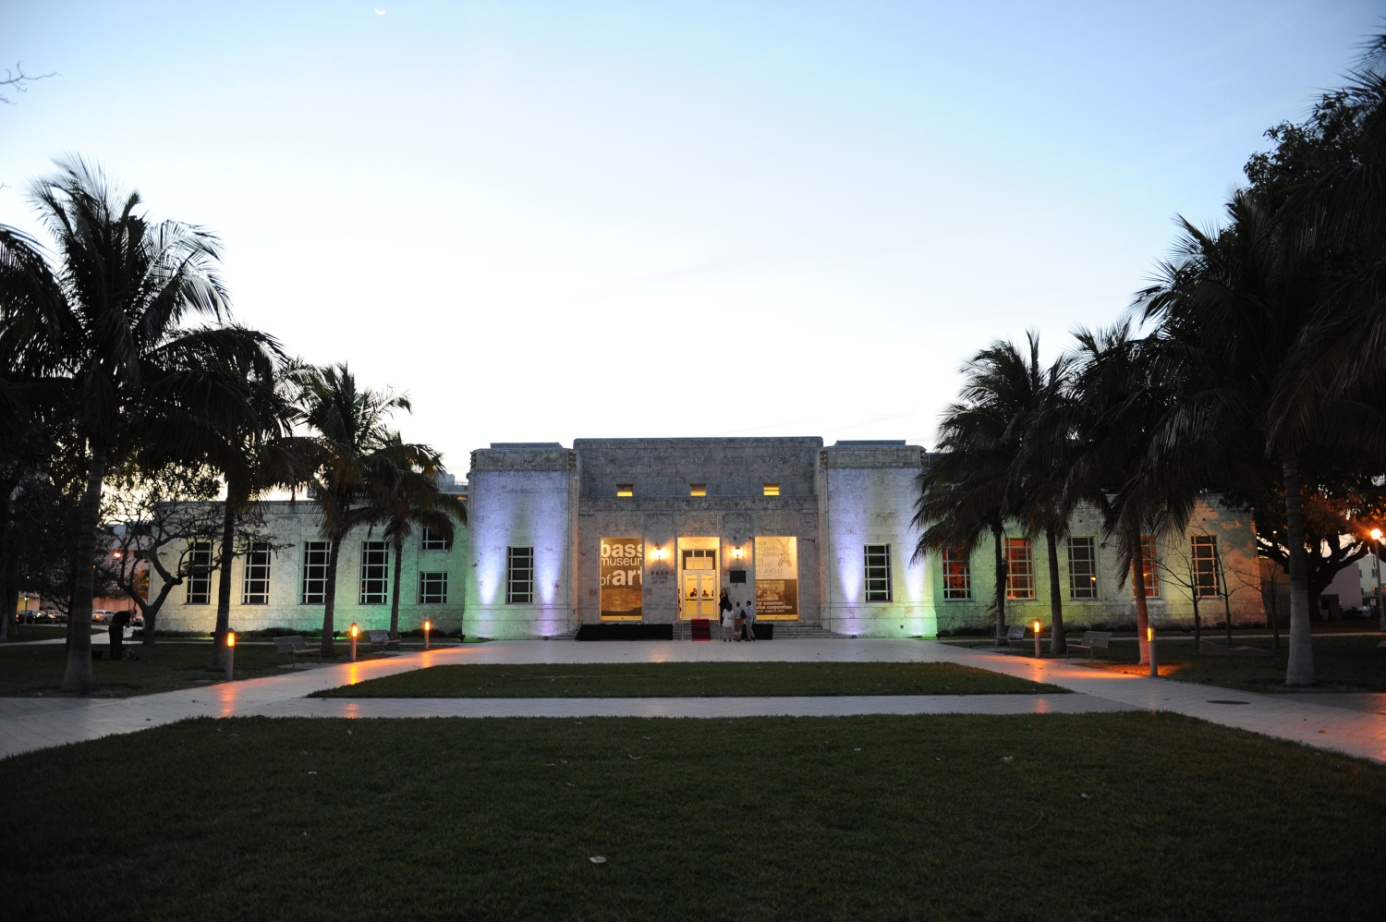 The Miami Beach Public Library and Art Center